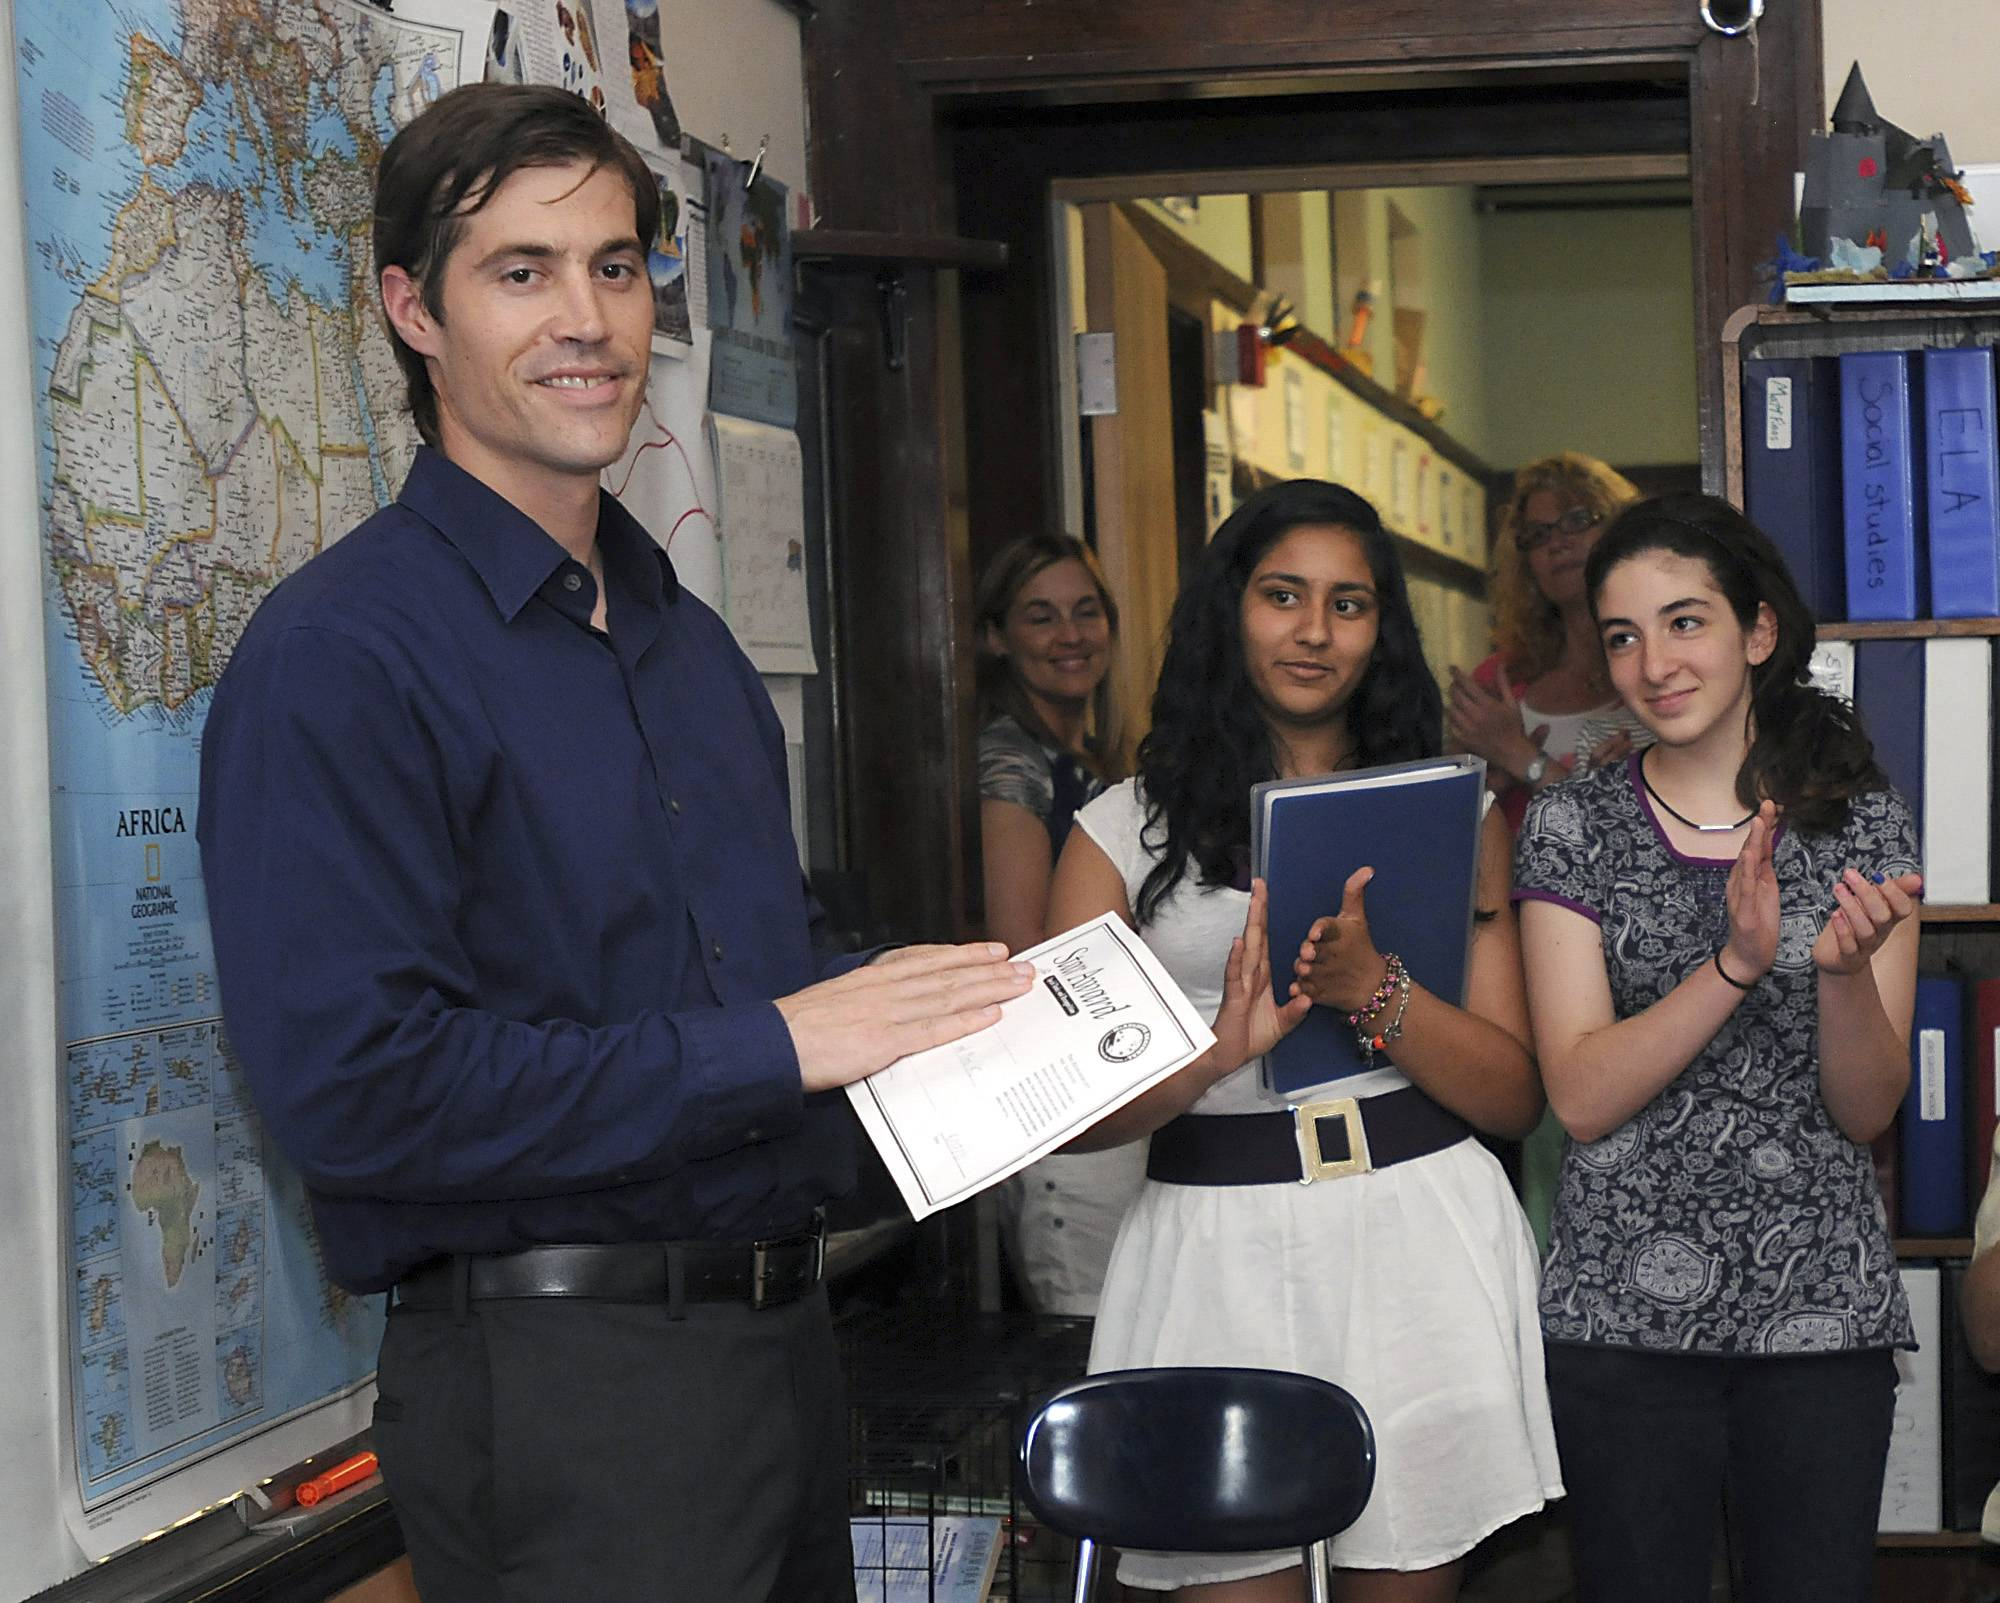 Journalist James Foley receives applause from students at the Christa McAuliffe Regional Charter Public School in Framingham, Mass. Foley had been released a month prior after being detained for six weeks in Libya. Students at the school had written government leaders to work for his release.